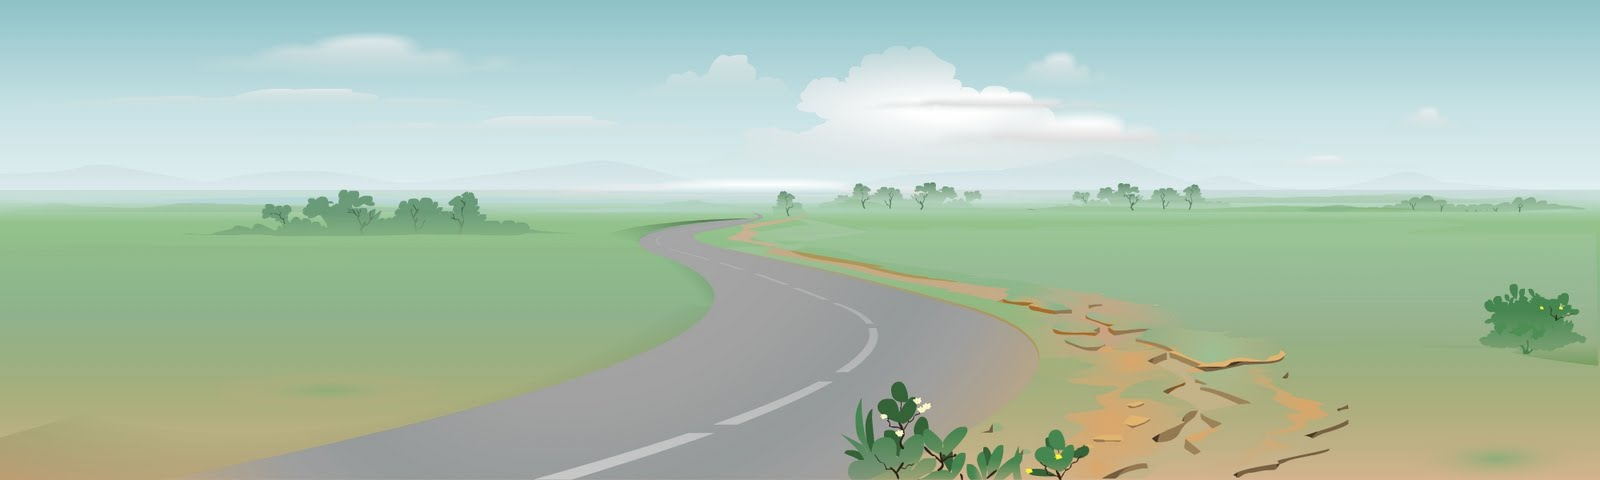 Animated Wallpaper and Desktop Backgrounds